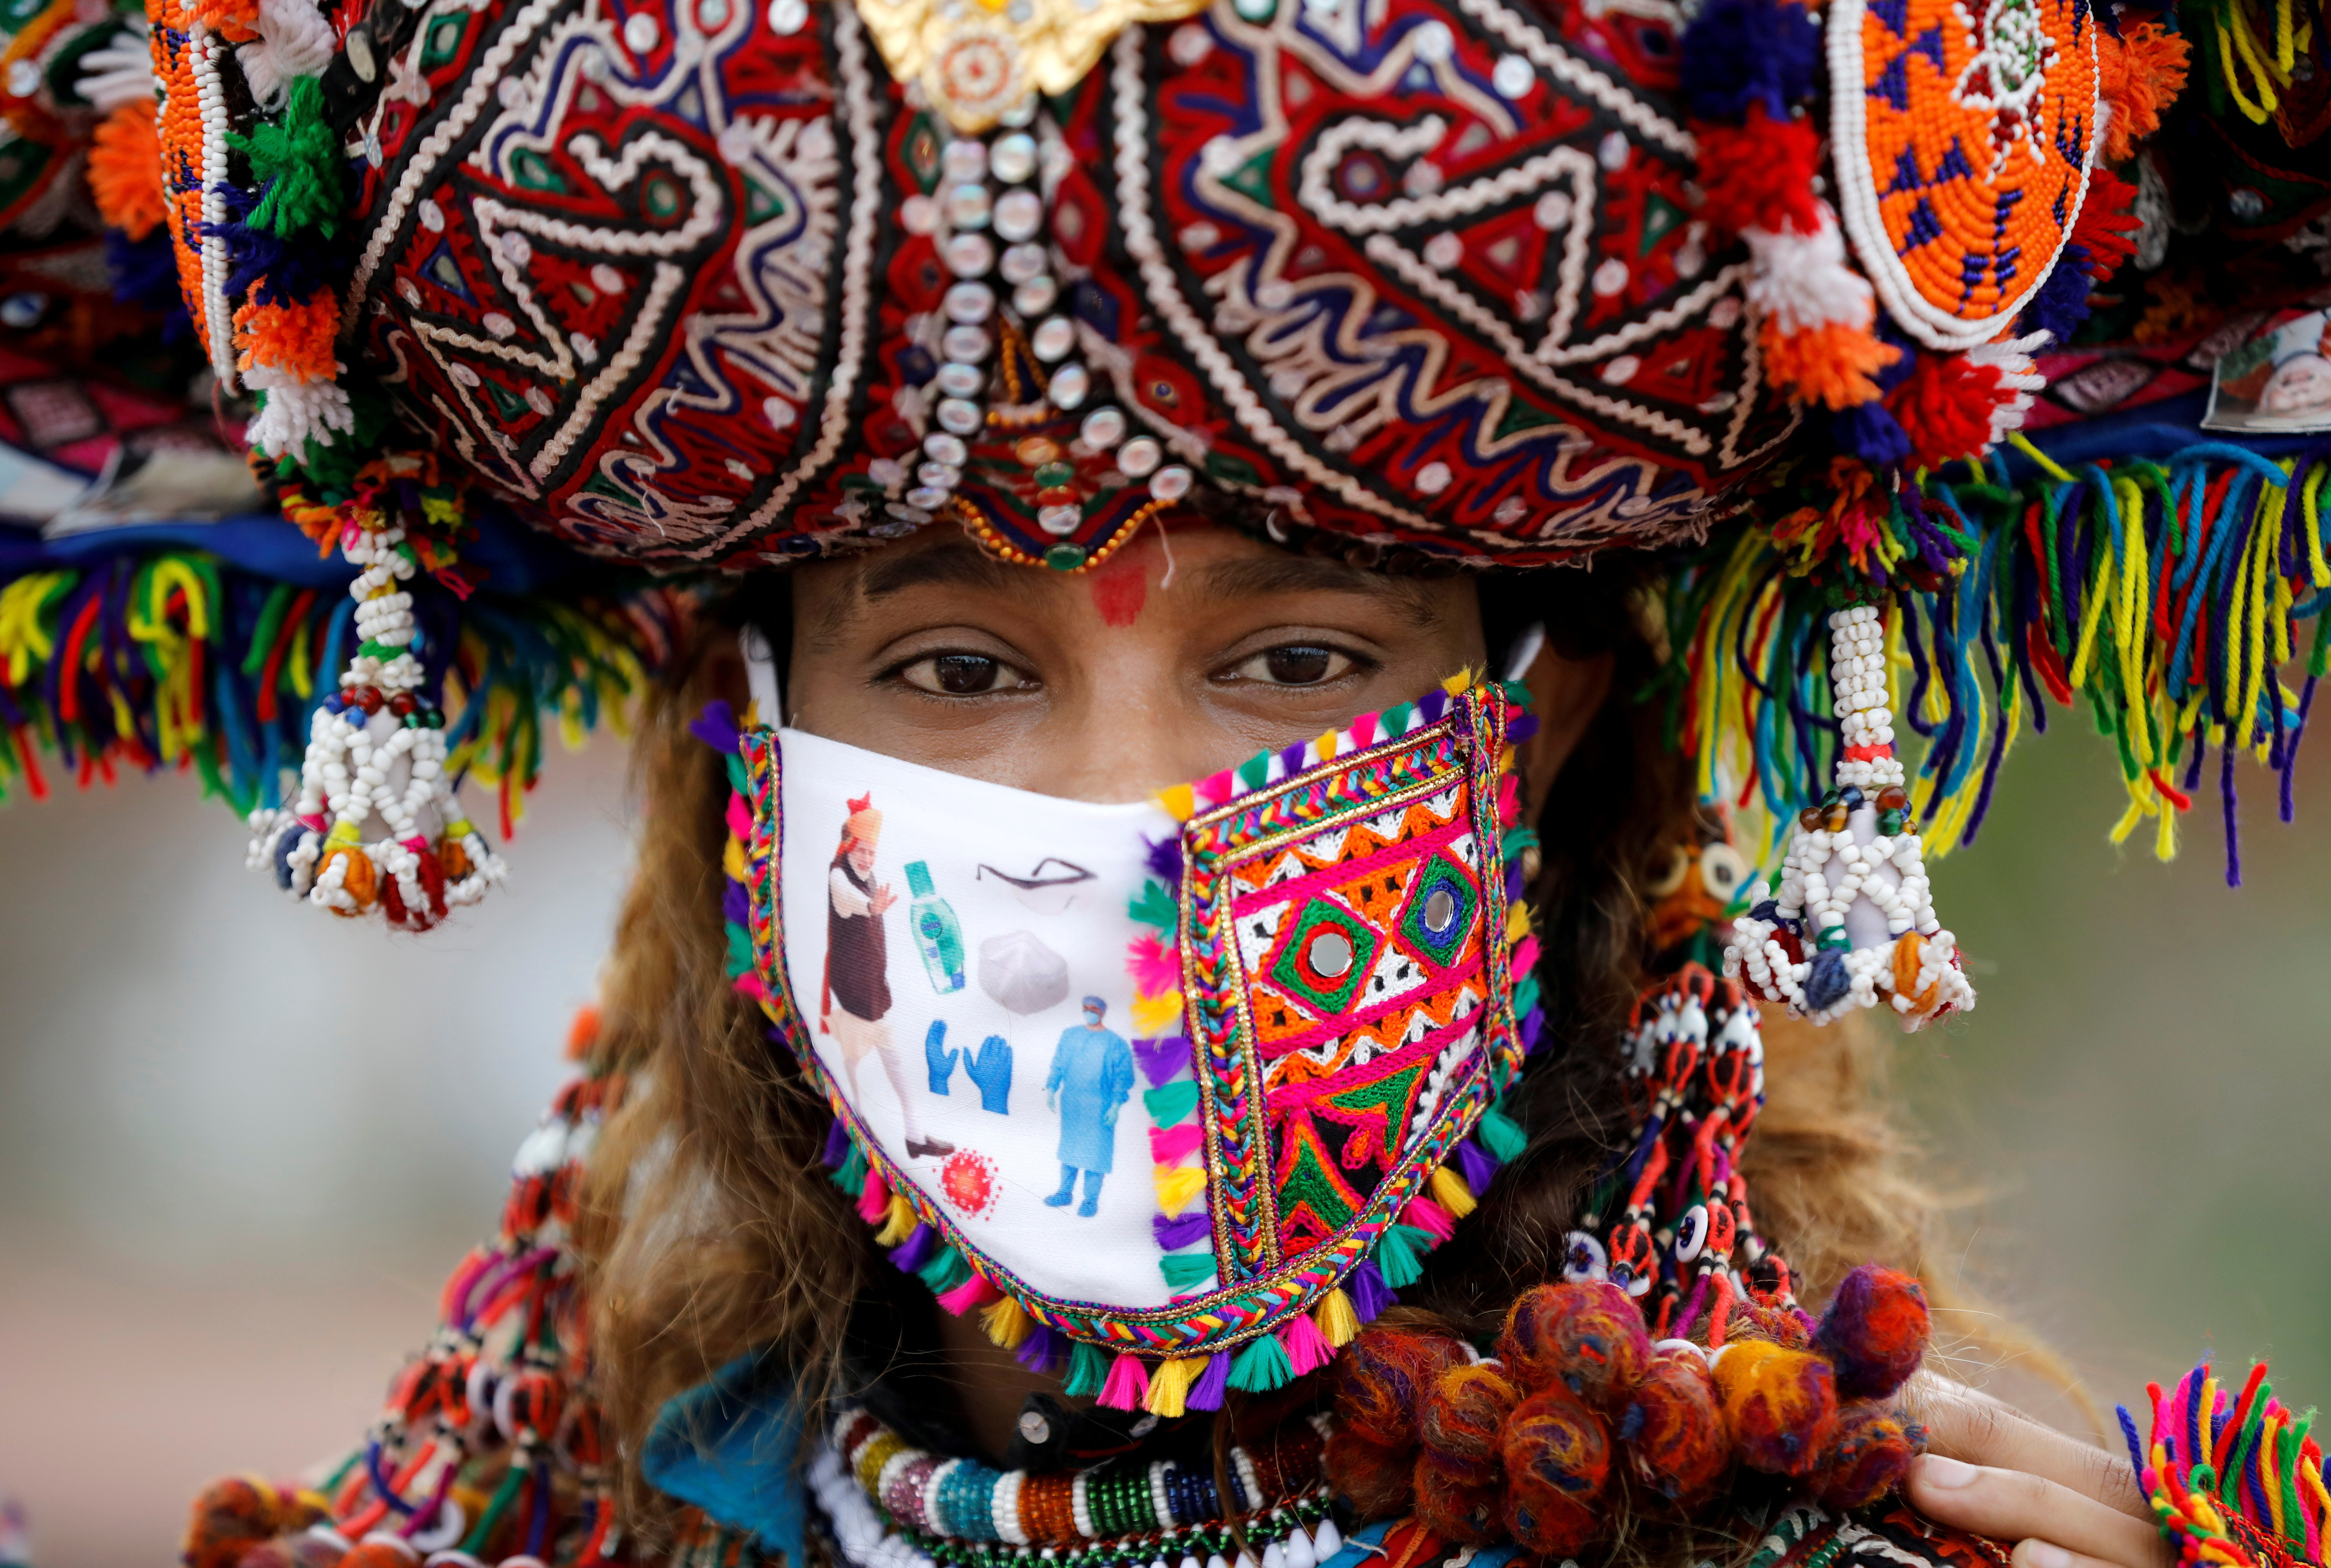 A participant in a traditional costume wearing a face mask attends a rehearsal for Garba, a folk dance, ahead of Navratri, a festival during which devotees worship the Hindu goddess Durga and youths dance in traditional costumes, amidst the coronavirus disease (COVID-19) outbreak, in Ahmedabad, India, September 12, 2020. REUTERS/Amit Dave     TPX IMAGES OF THE DAY - RC2UWI9DC85L